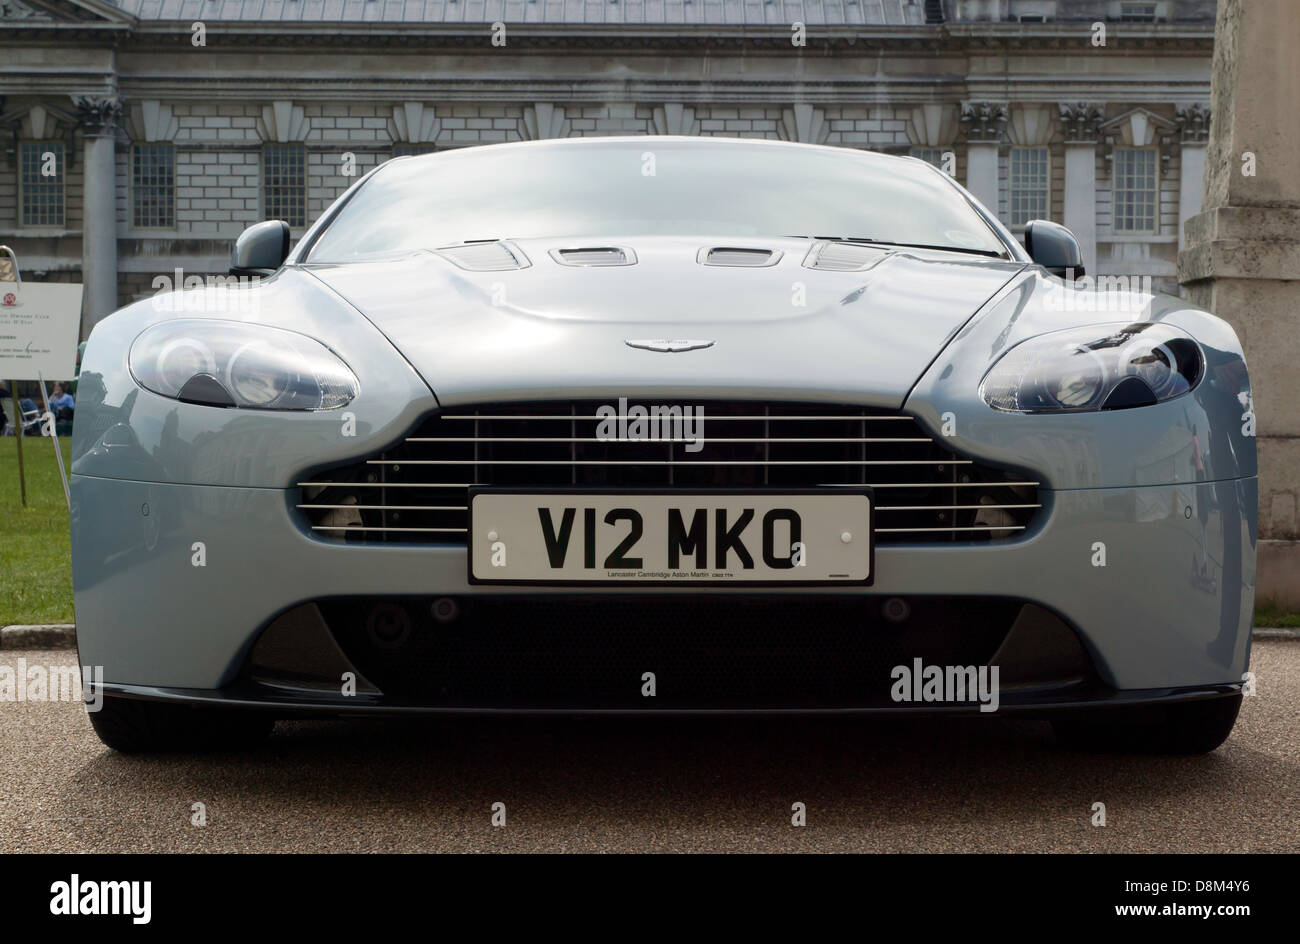 Front View Of An Aston Martin V12 Vantage On Display At The Old